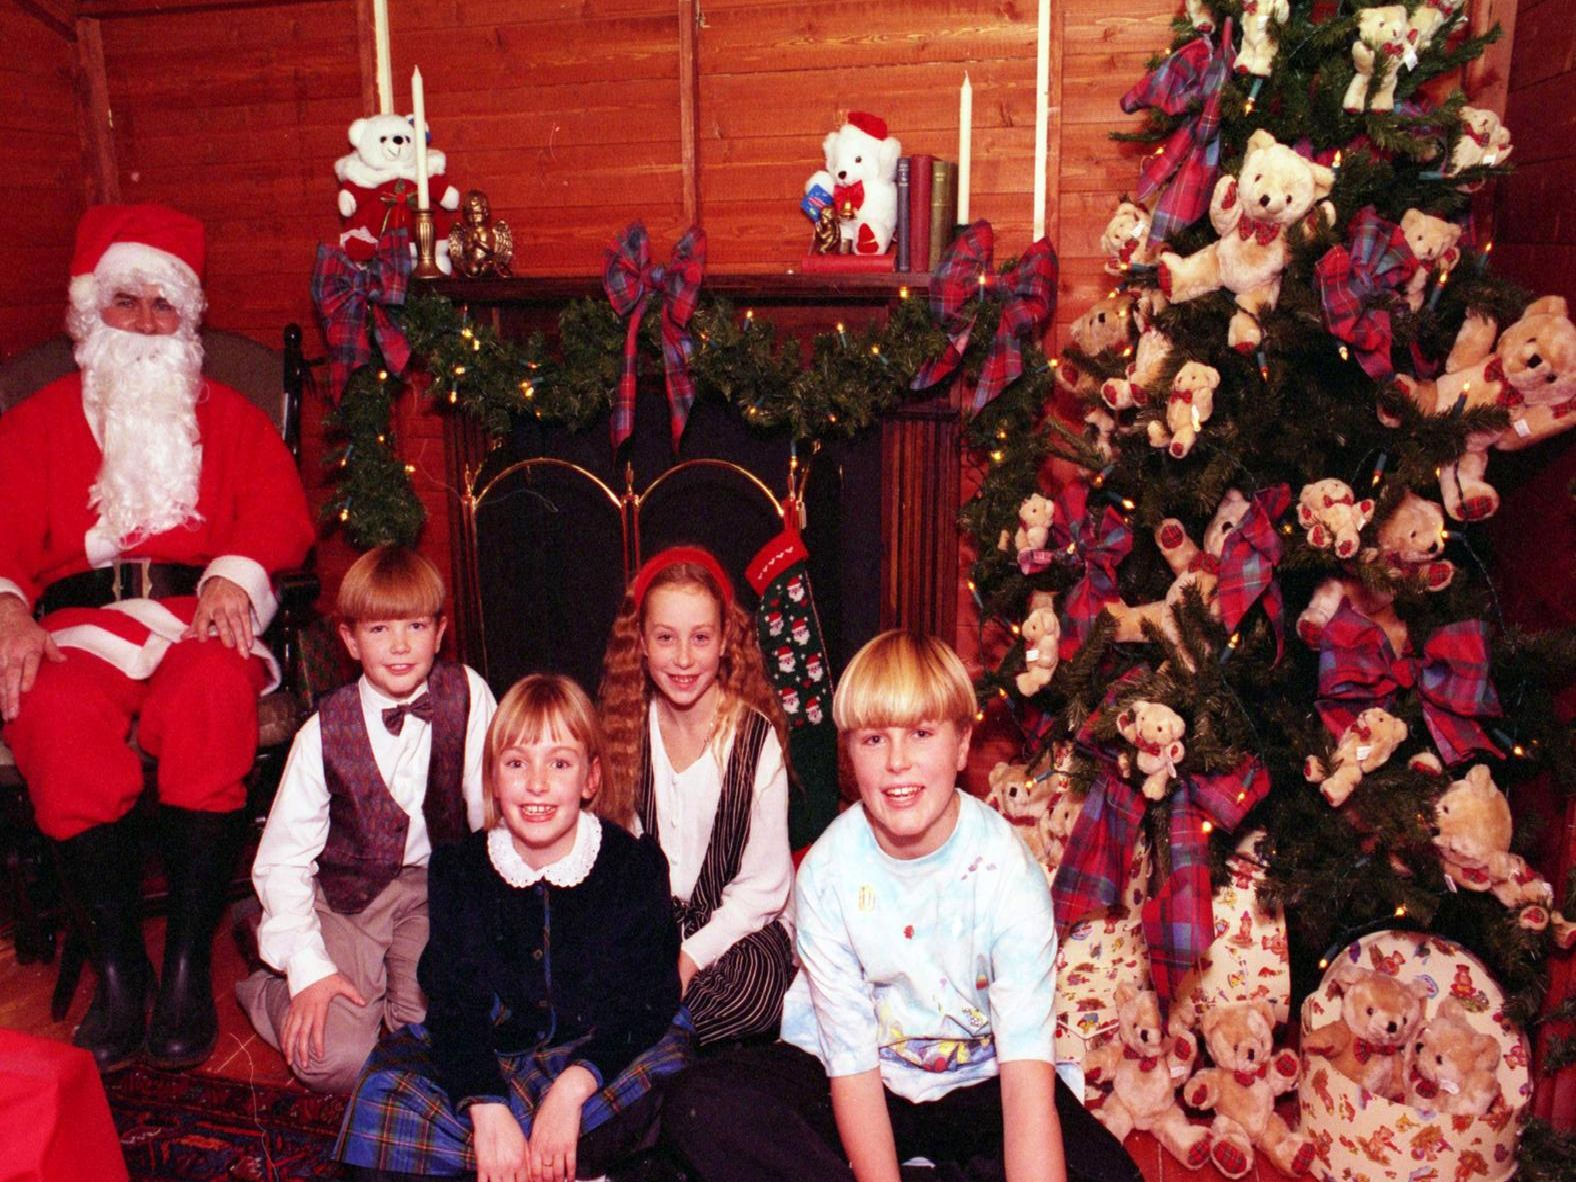 When Christmas had a special sparkle